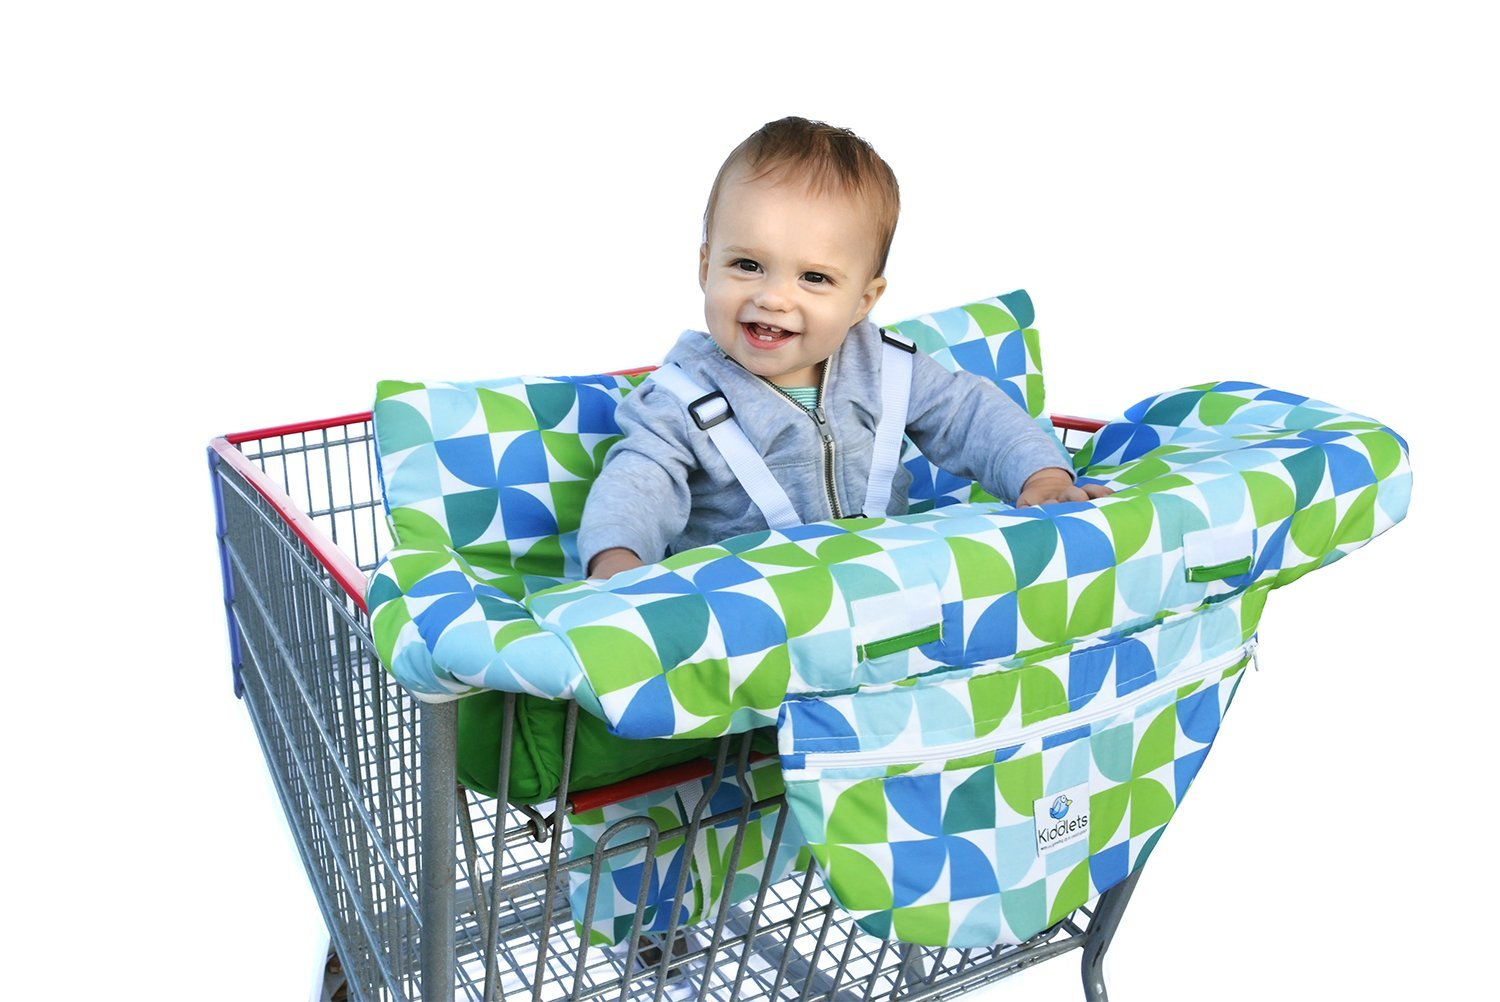 Insert Cushion Holder for Boys Restaurant High Chair Costco Sized Grocery Shopping Cart Baby Seat Cover Infants Toddler Girls